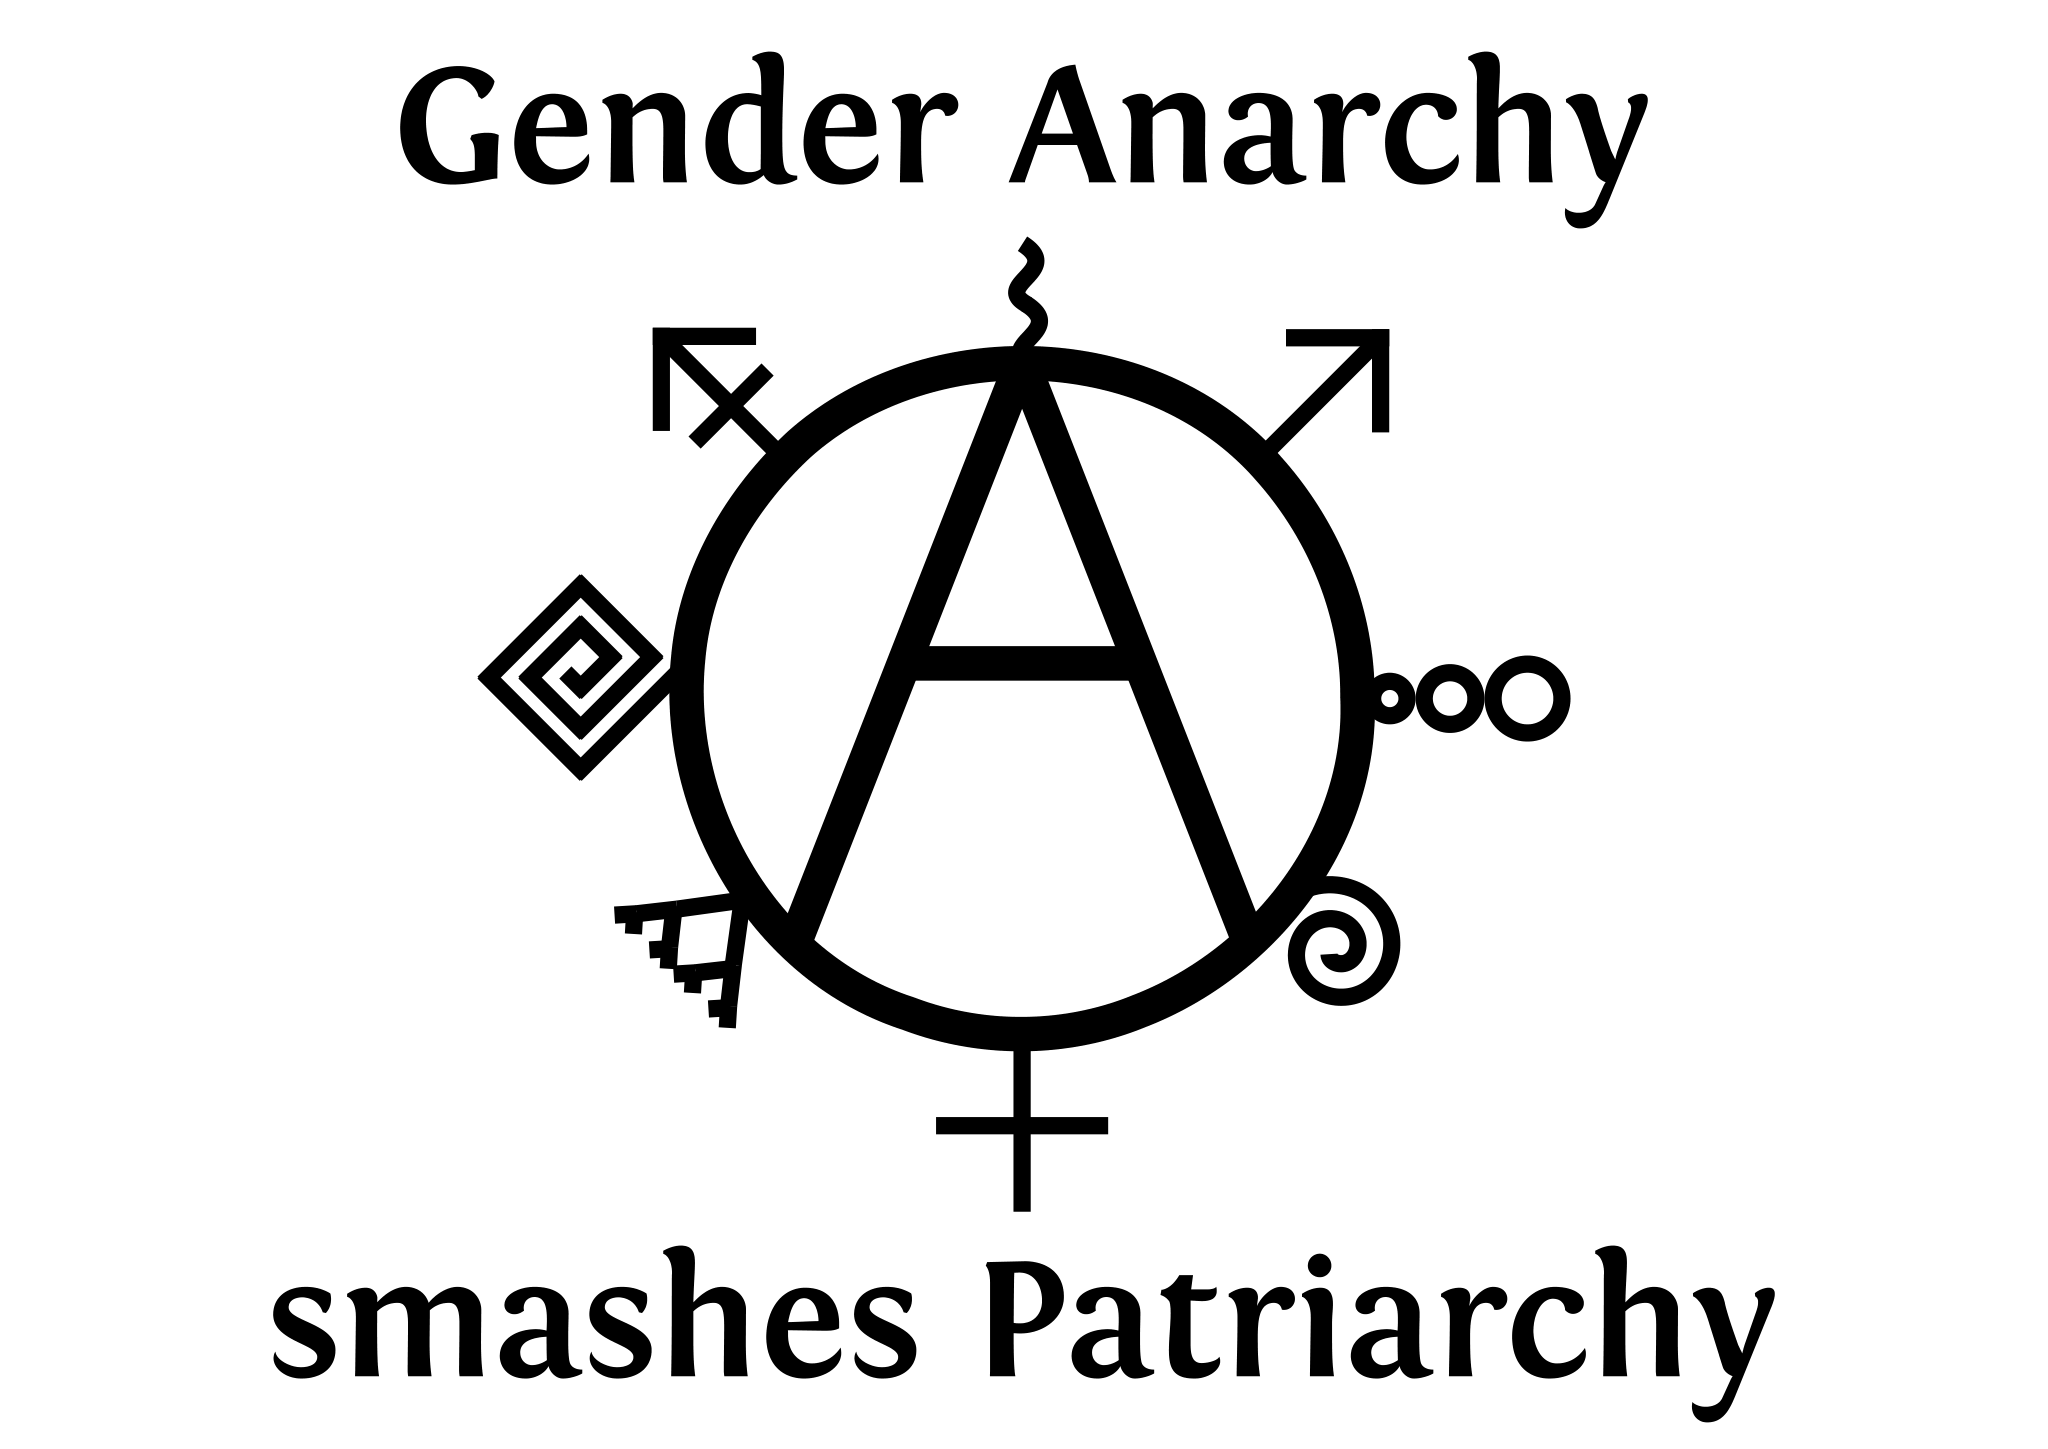 Gender Anarchy smashes Patriarchy